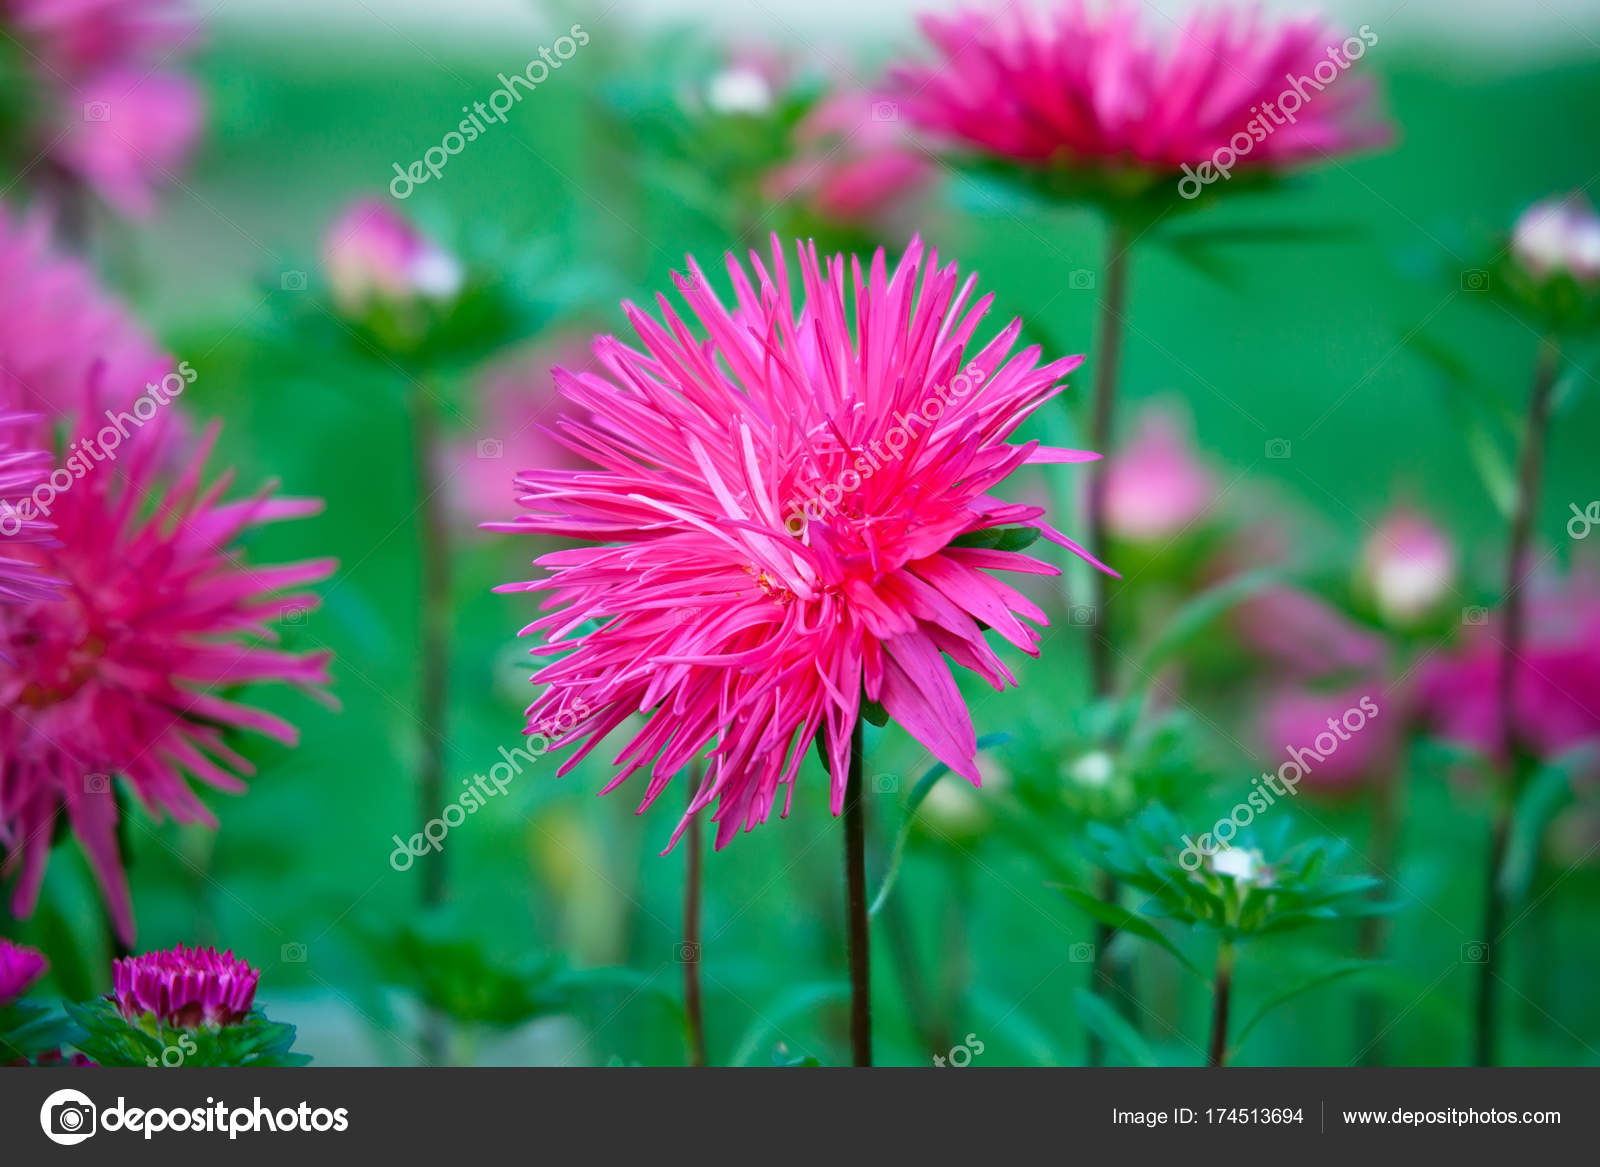 Bright Pink Aster Flower On A Flowerbed In A Park Stock Photo